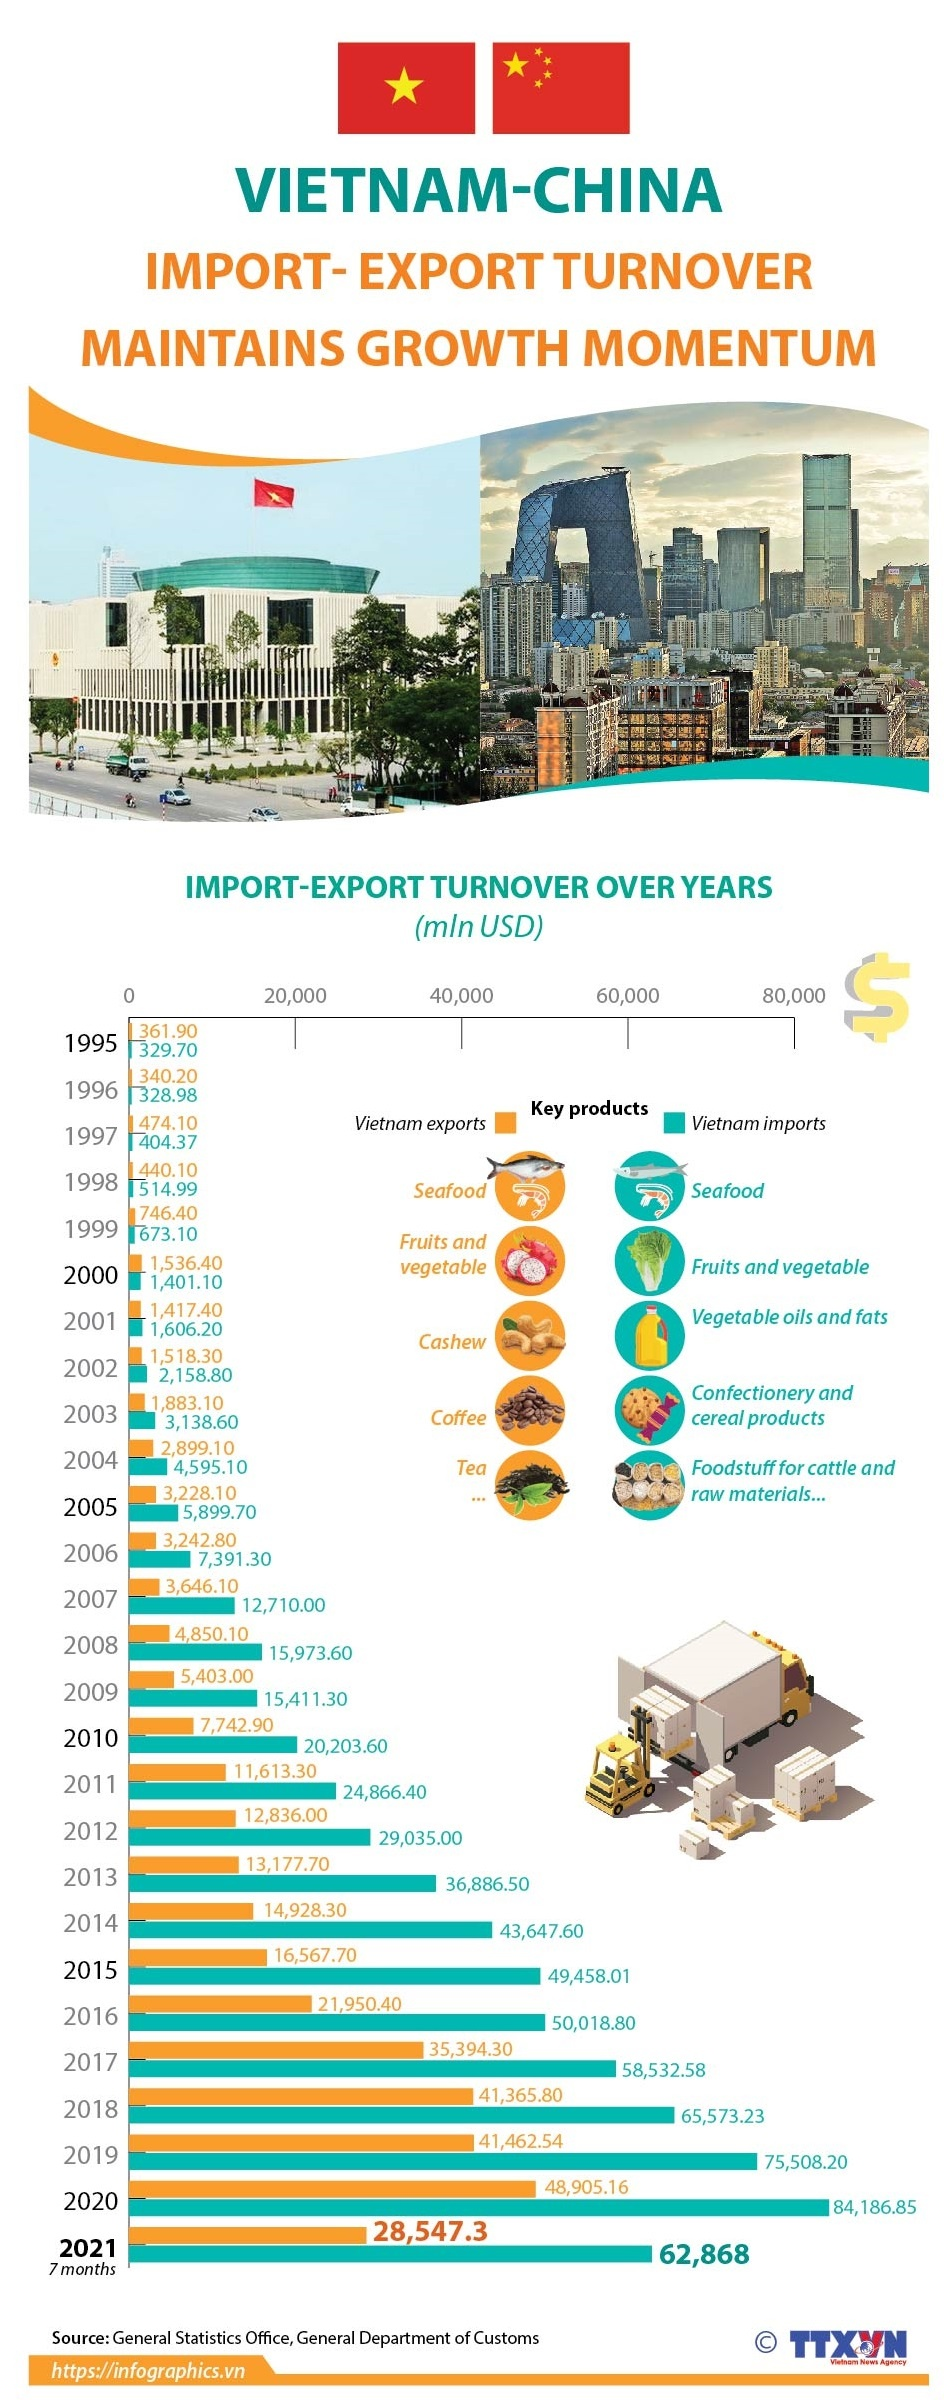 Vietnam-China import-export turnover maintains growth momentum